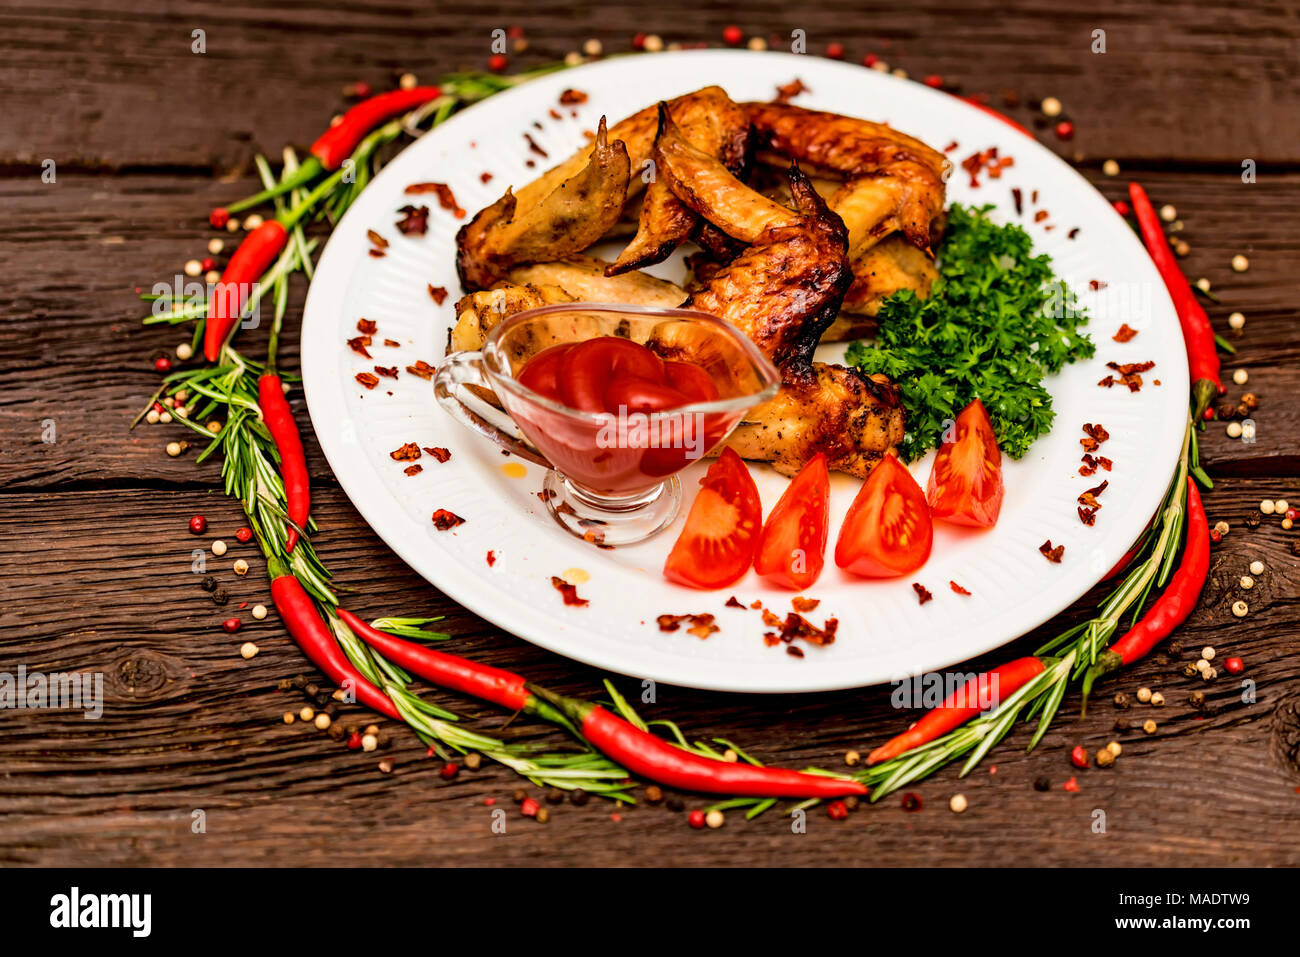 Chicken wings grilled with spices and chili pepper Stock Photo